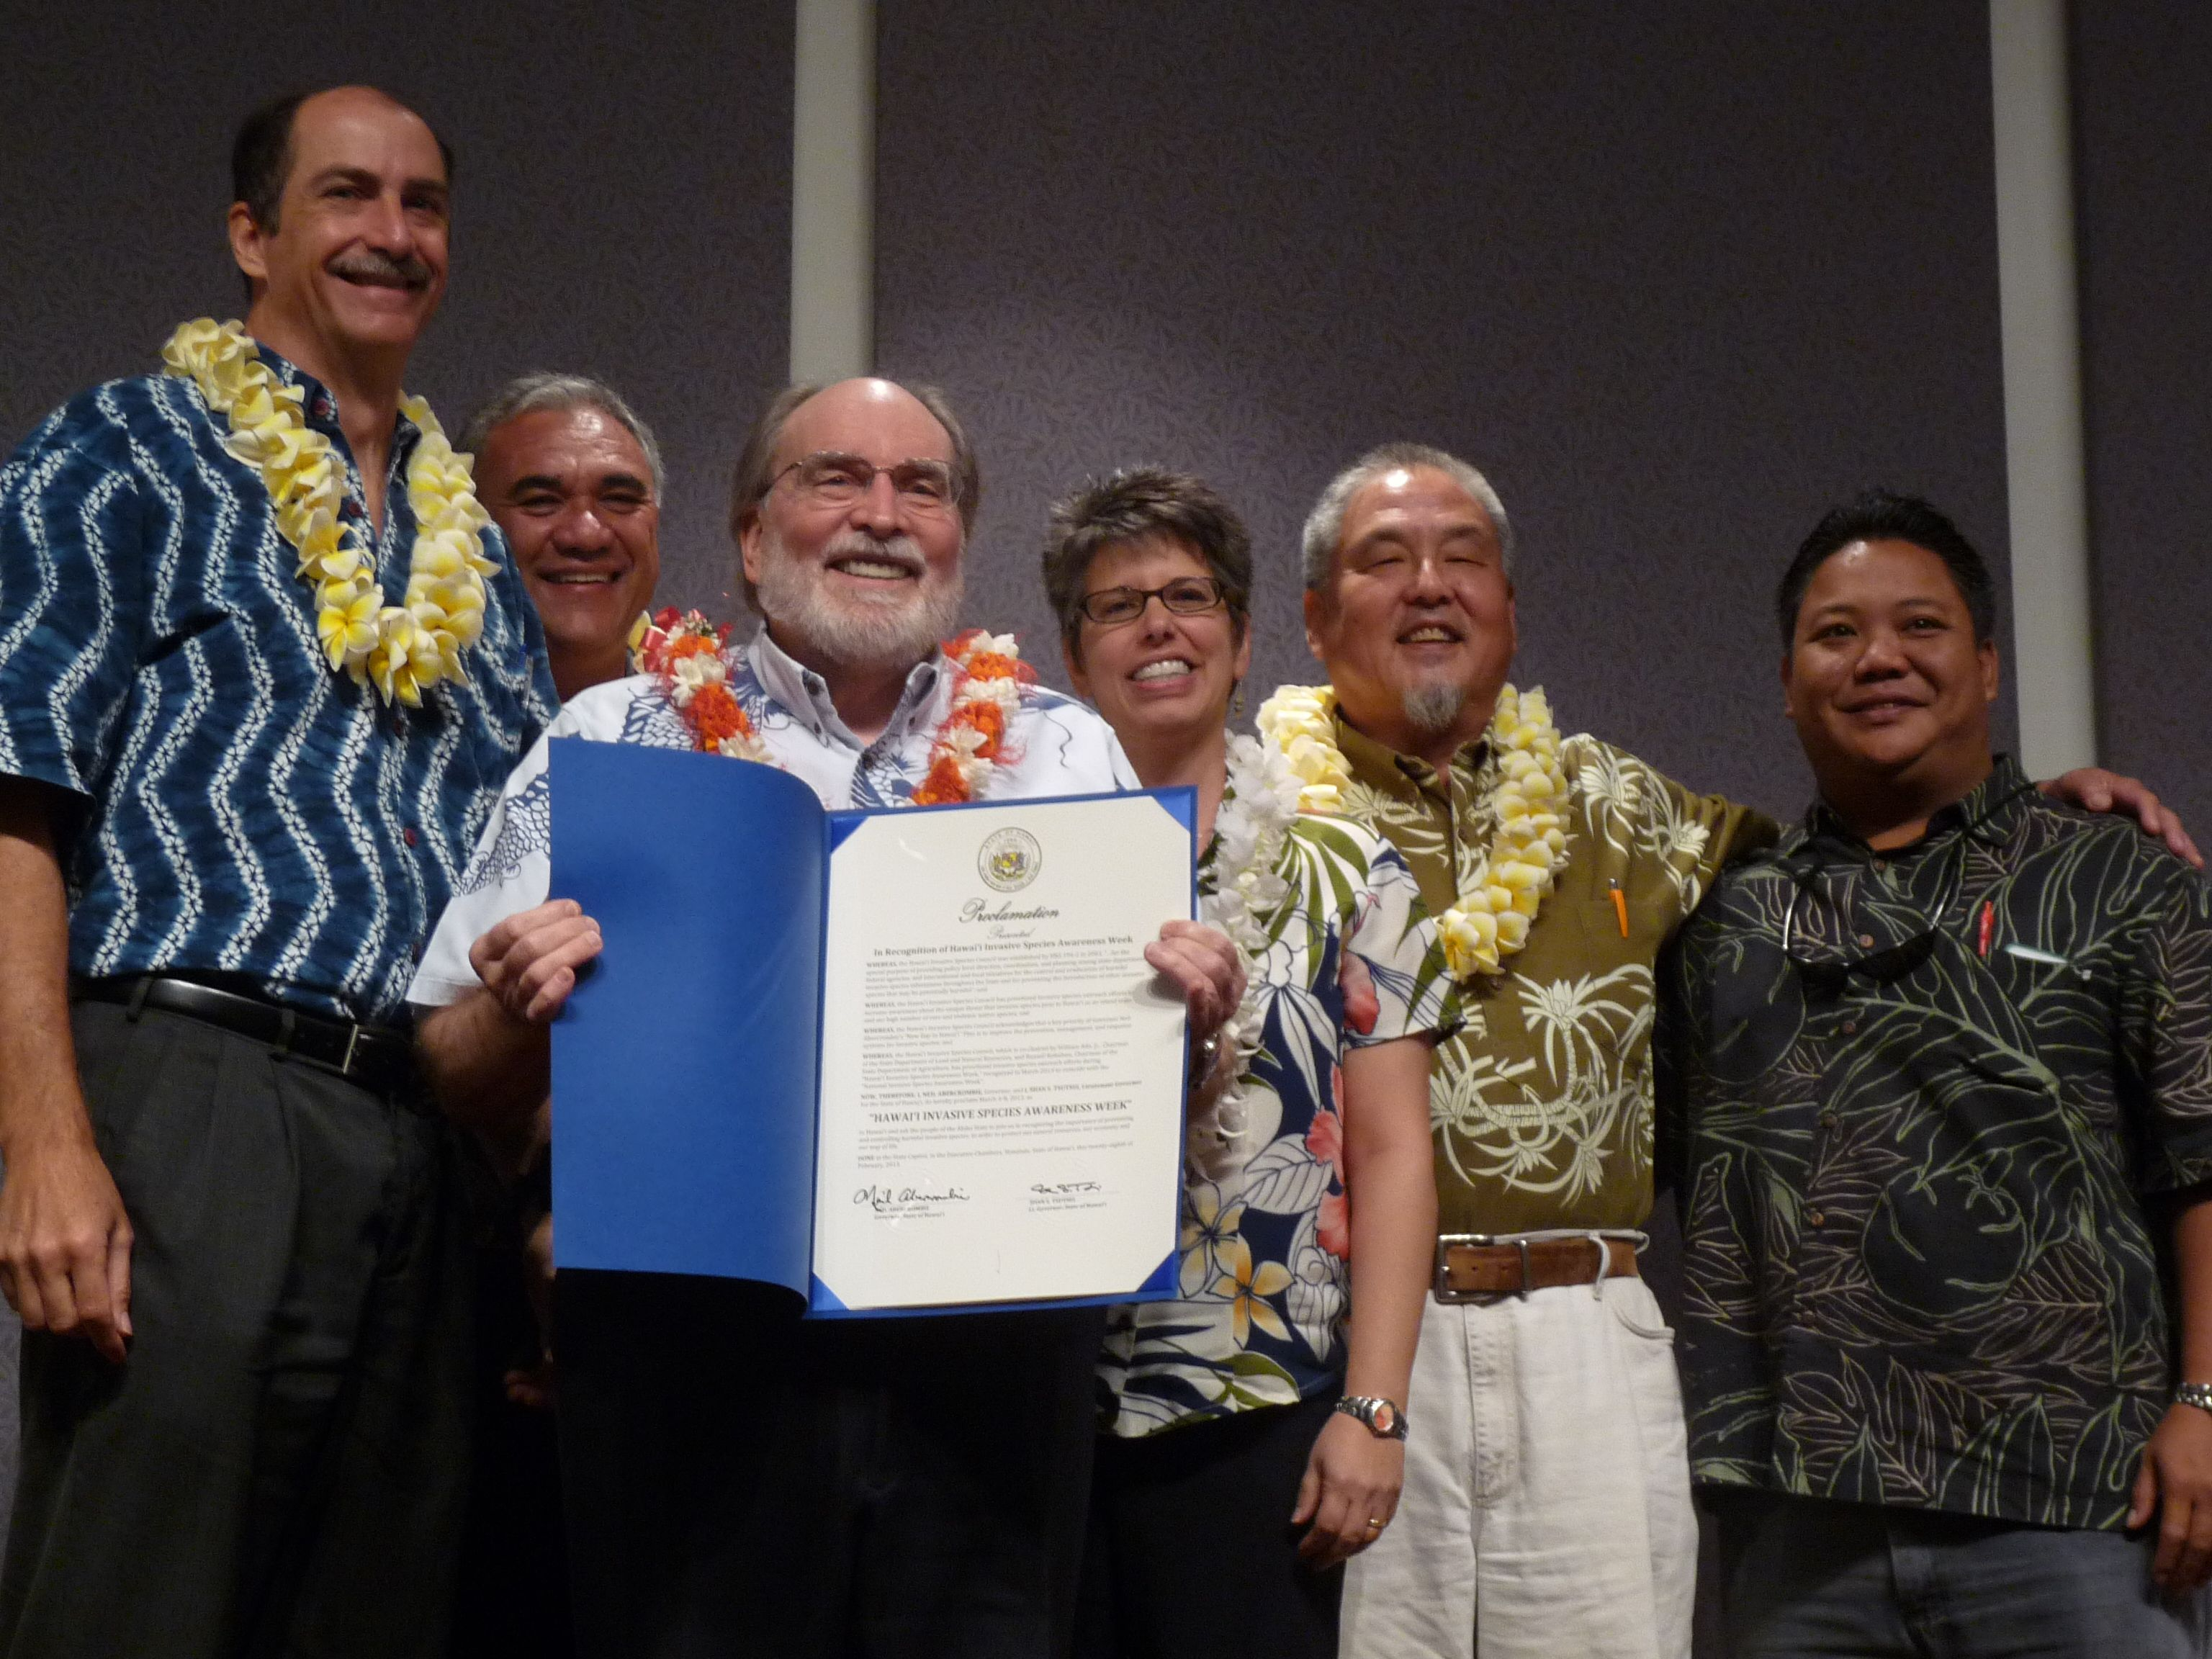 HISC members receive Governor's proclamation for Hawaii Invasive Species Awareness Week in March. From left: DOH Deputy Director Gary Gill, DLNR Chairperson William J. Aila, Gov. Neil Abercrombie, UH CTAHR Dean Maria Gallo, HDOA Chairperson Russell Kokubun, DOT David Rodriguez.